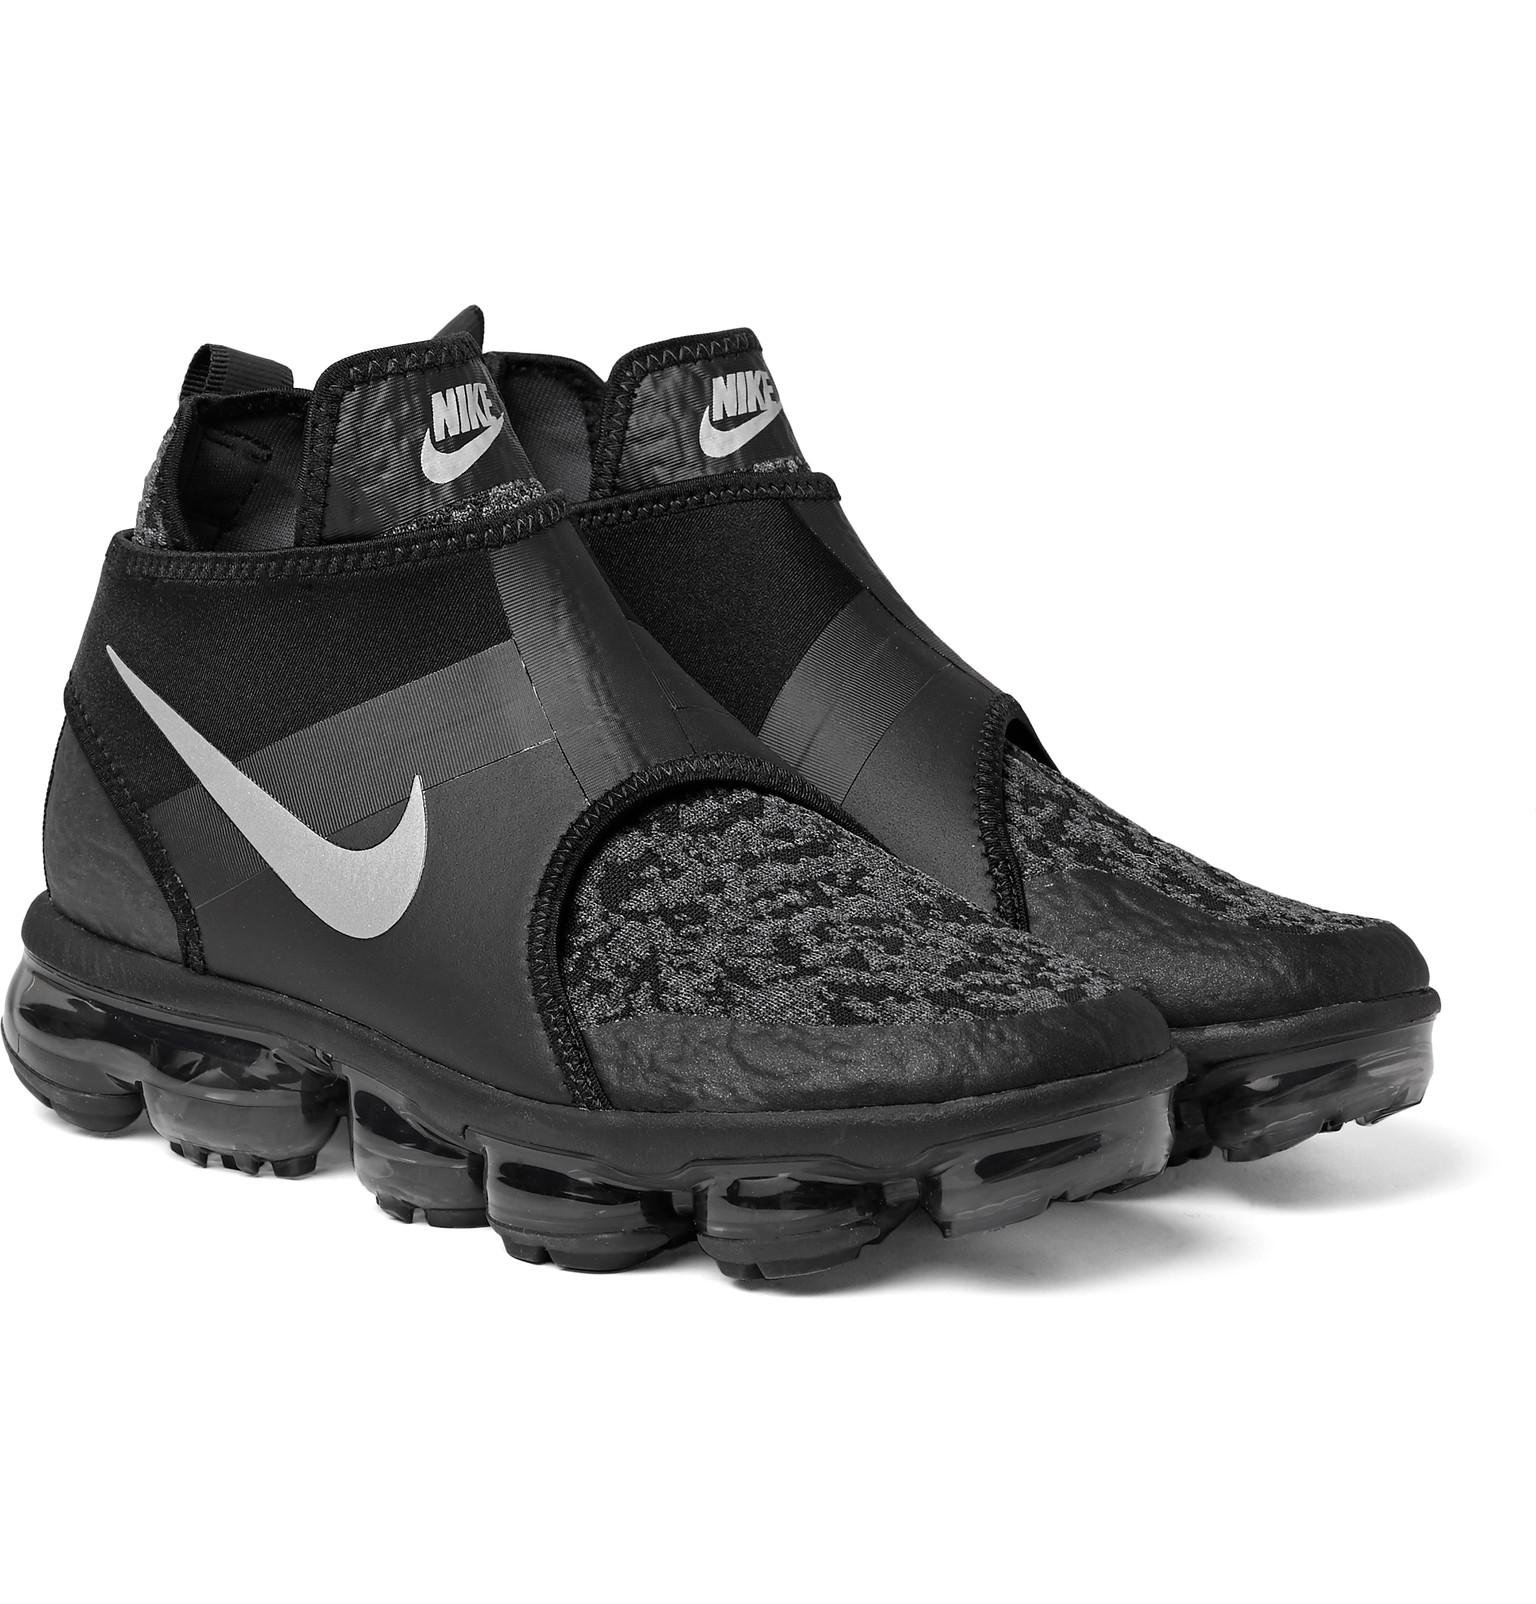 Chukka Black Vapormax Vente Neoprene And Slip Air Sneakers Mesh Nike RE4qwR